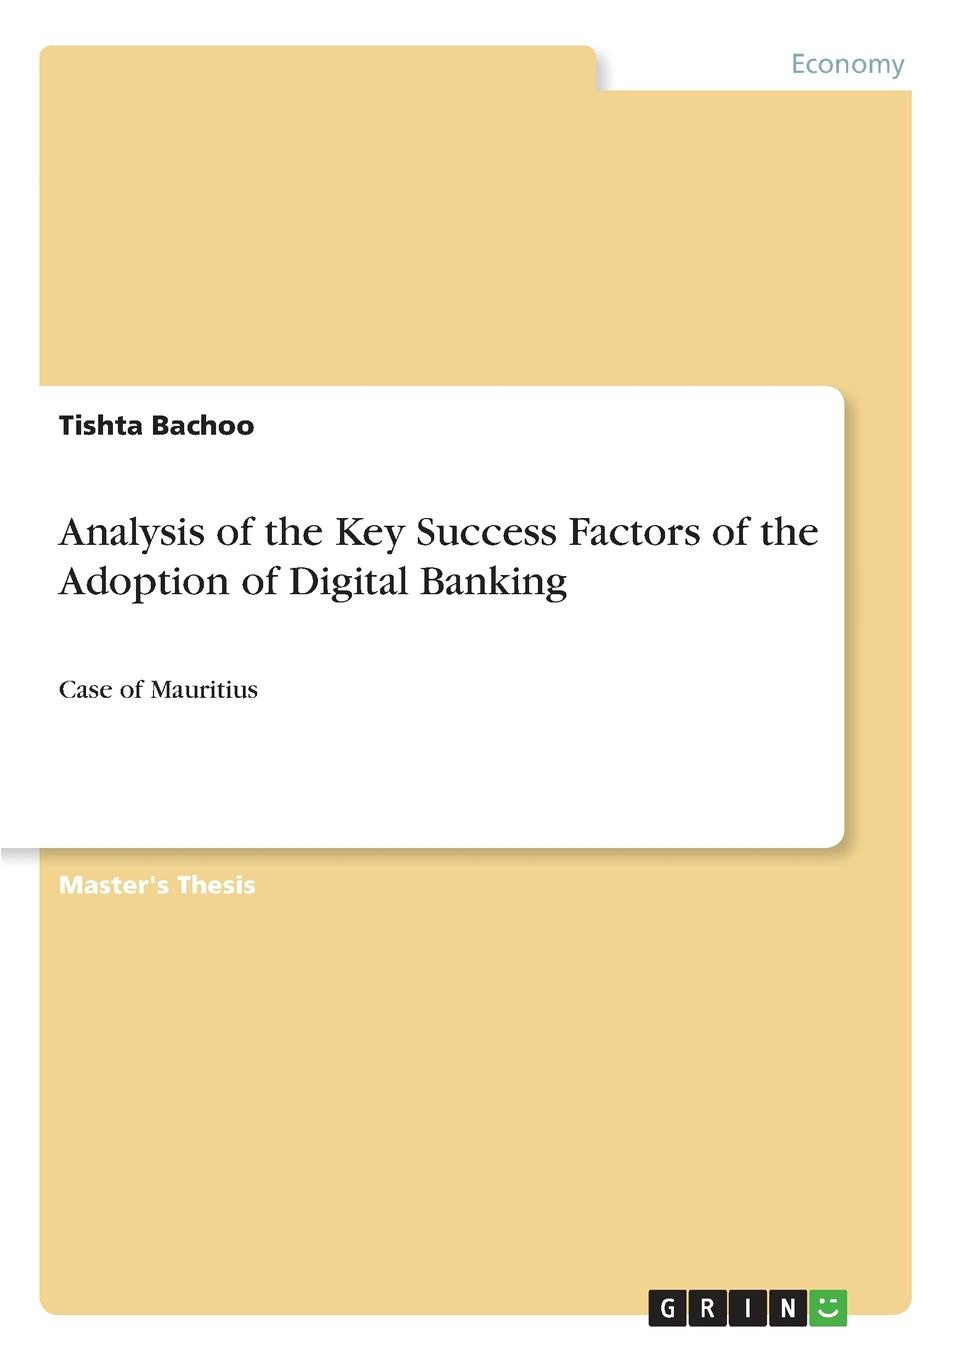 Tishta Bachoo Analysis of the Key Success Factors of the Adoption of Digital Banking deborah dilley k essentials of banking isbn 9780470332269